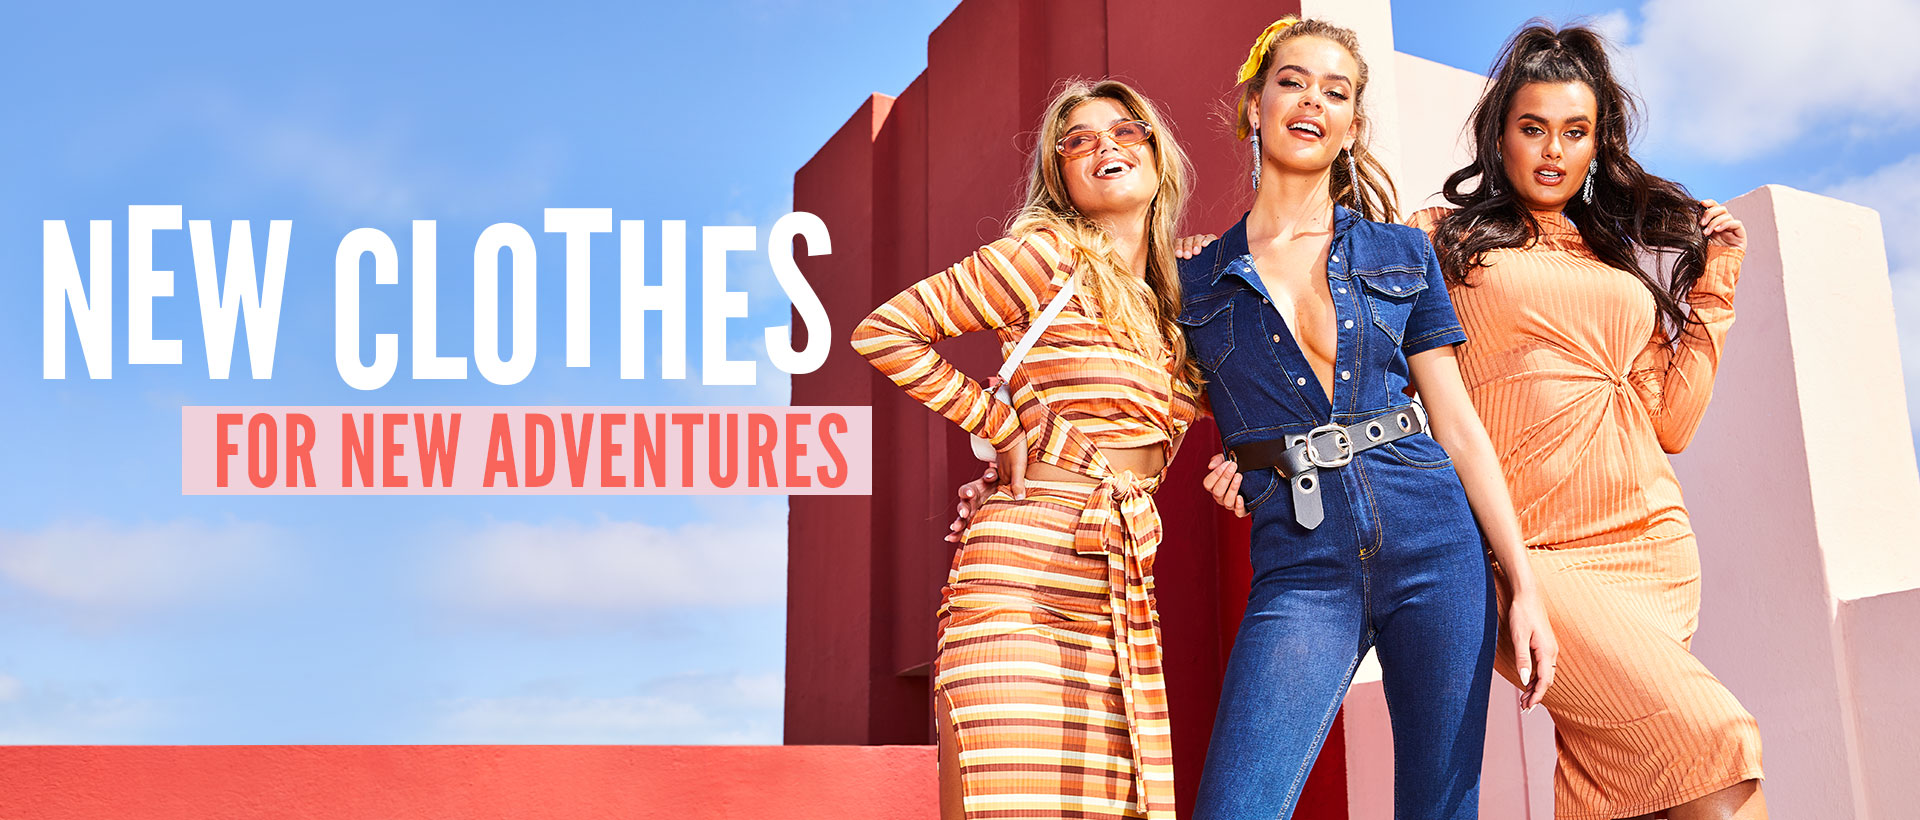 eecdff5f015f2 Clothes | Women's & Men's Clothing & Fashion | Online Shopping – boohoo